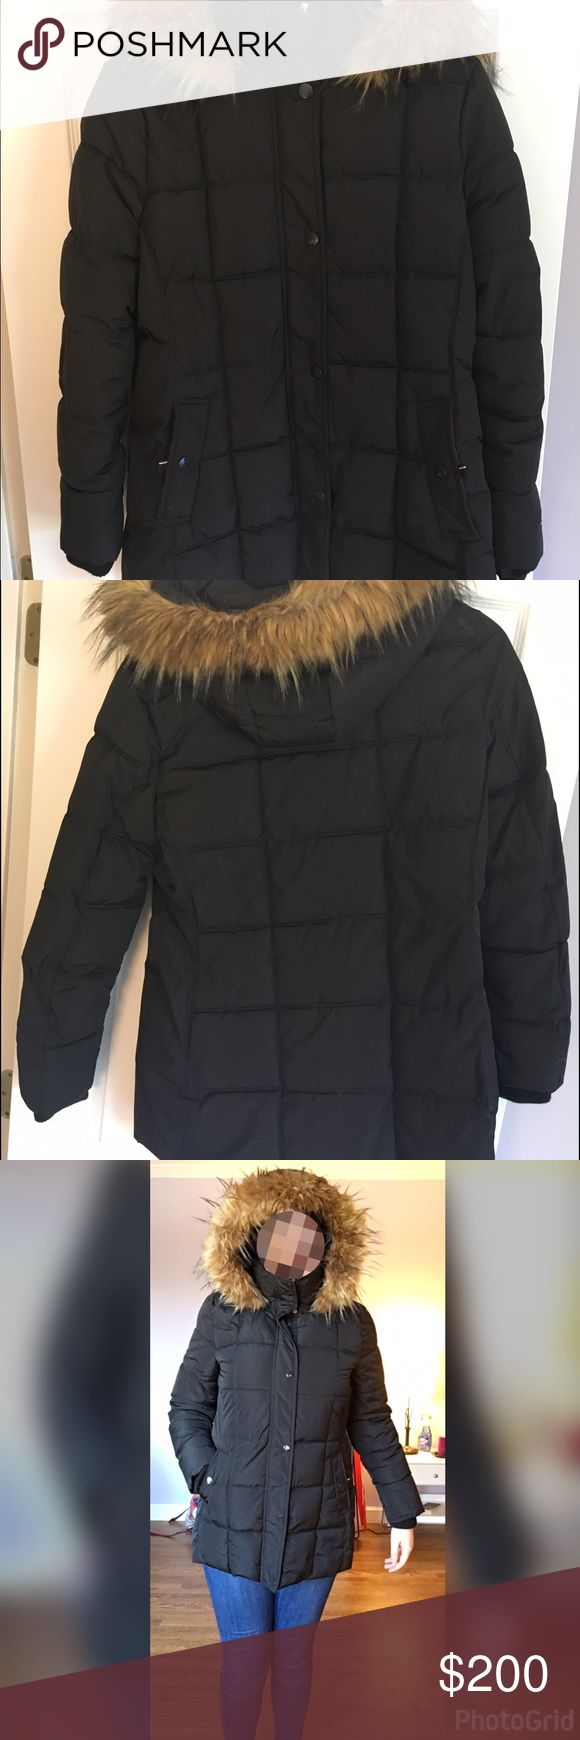 Really warm winter coat It's a really warm winter coat Tommy Hilfiger in a great conditions. Wear only twice. Tommy Hilfiger Jackets & Coats